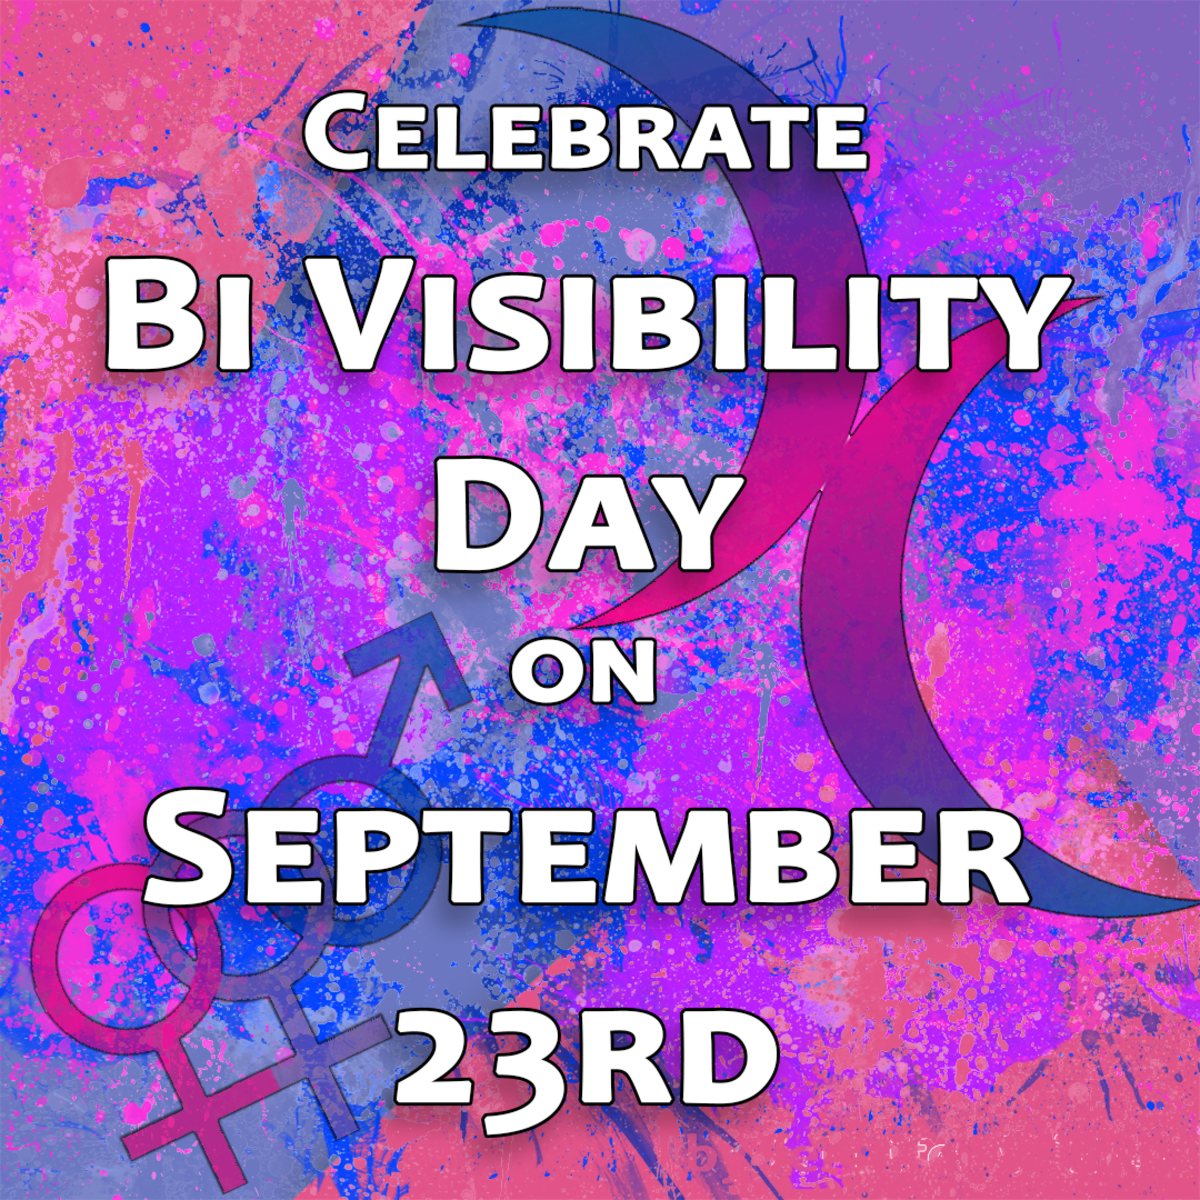 Celebrate Bi Visibility Day on September 23rd